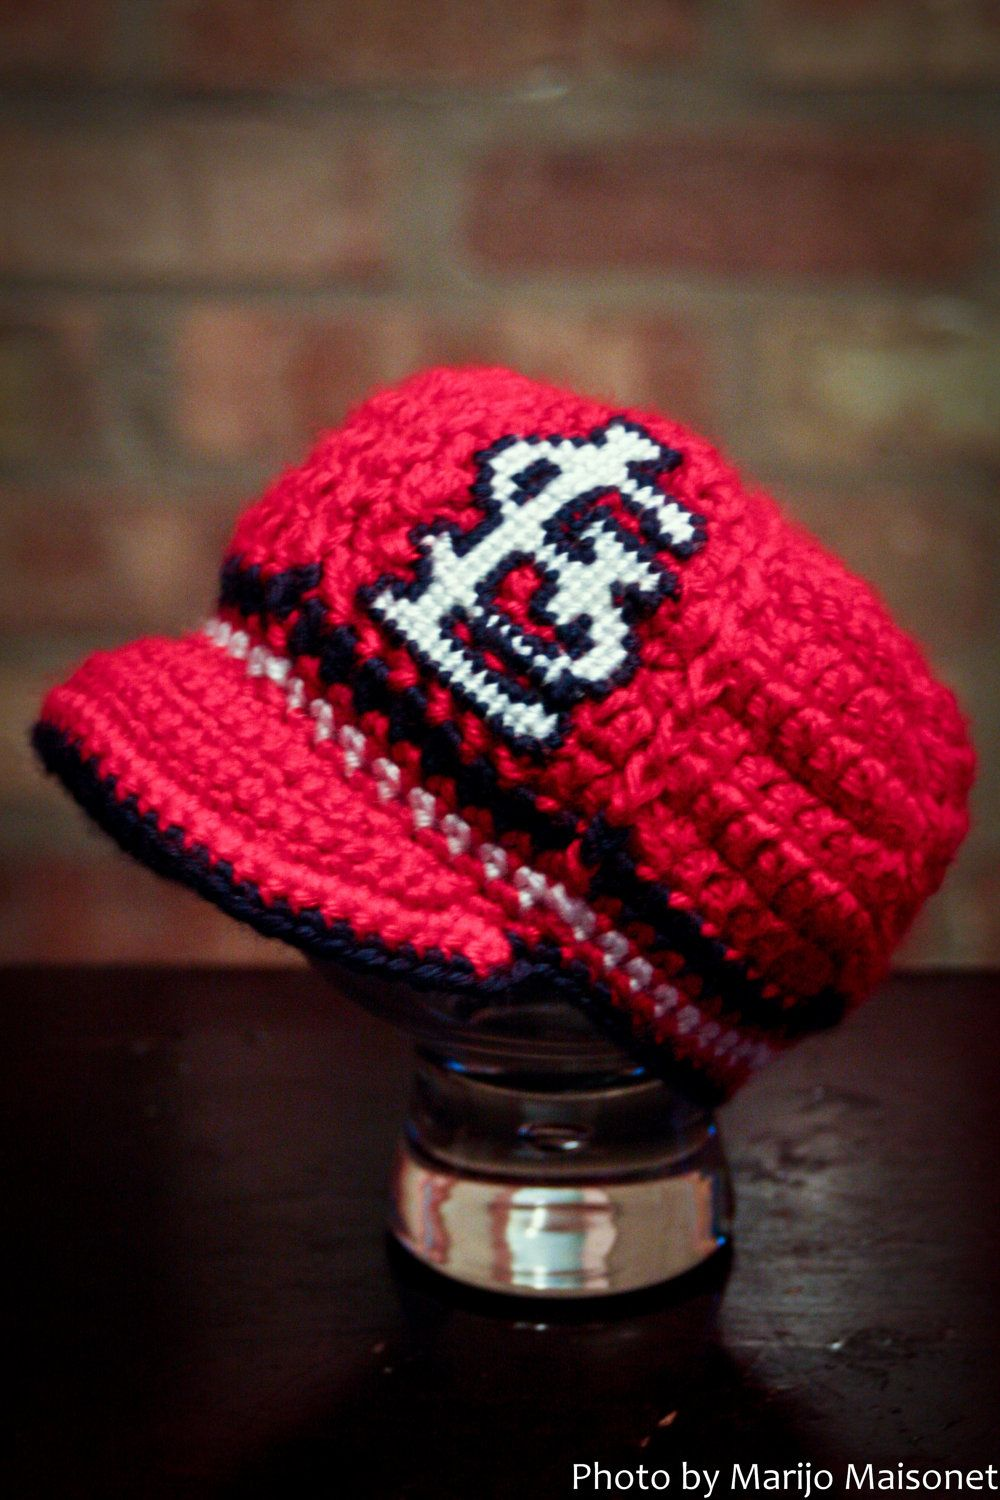 St Louis Cardinals Inspired Crocheted Baseball Cap I Need To Find